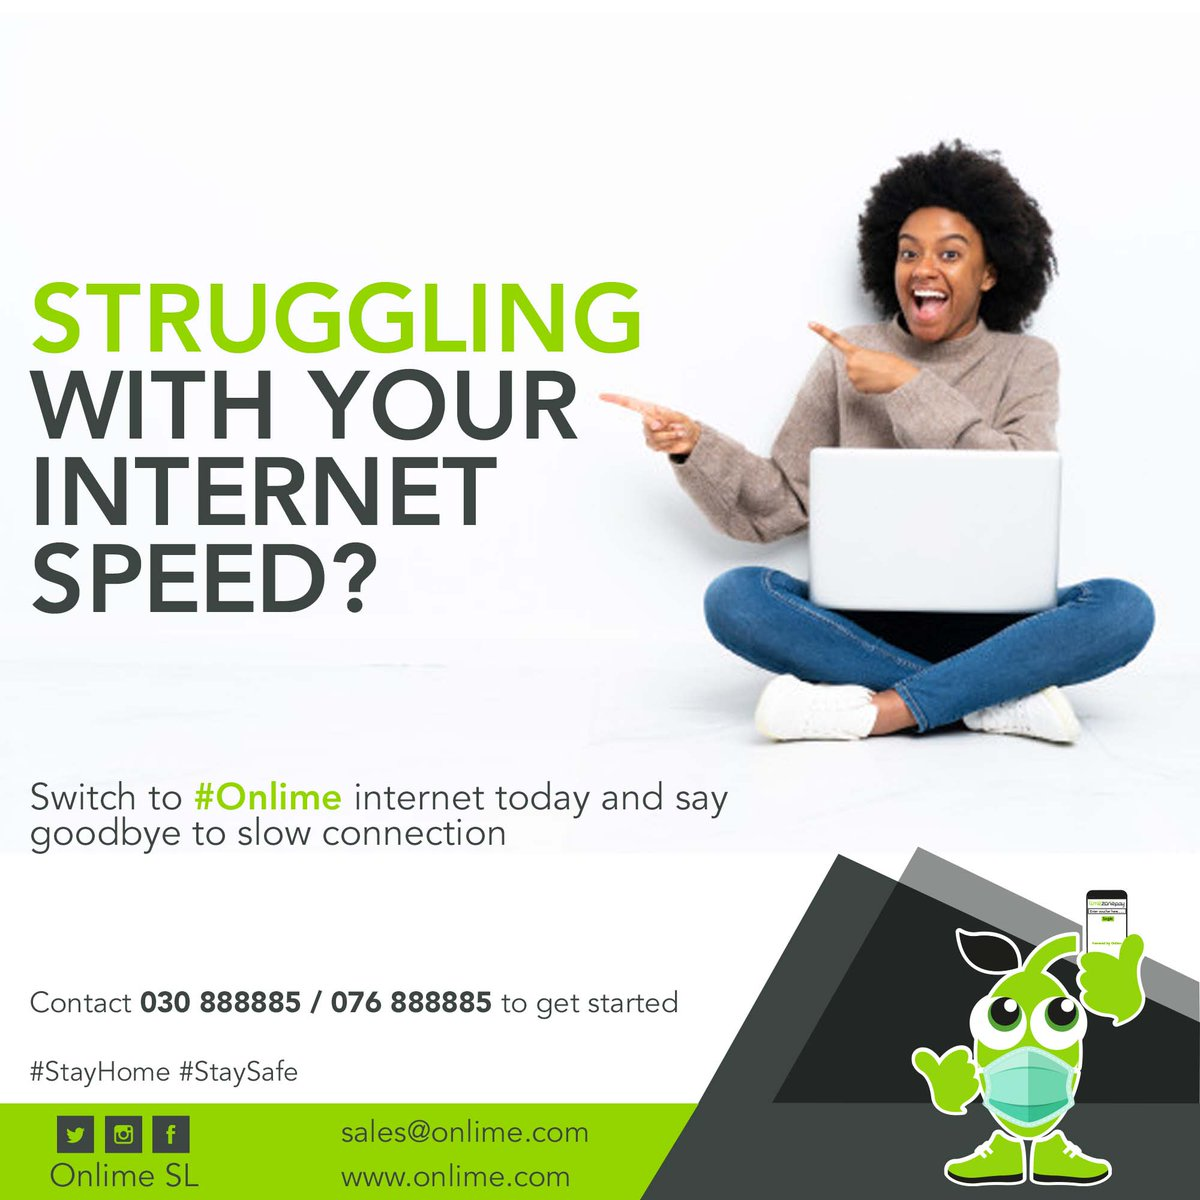 Switch to #OnlimeInternet and say goodbye to slow connection.  Call 076 888885 / 030 888885 or email sales@onlime.sl to get started. #SaloneTwitter #SierraLeone #Freetown #StayHome #StaySafe https://t.co/BFaKgiS5WO